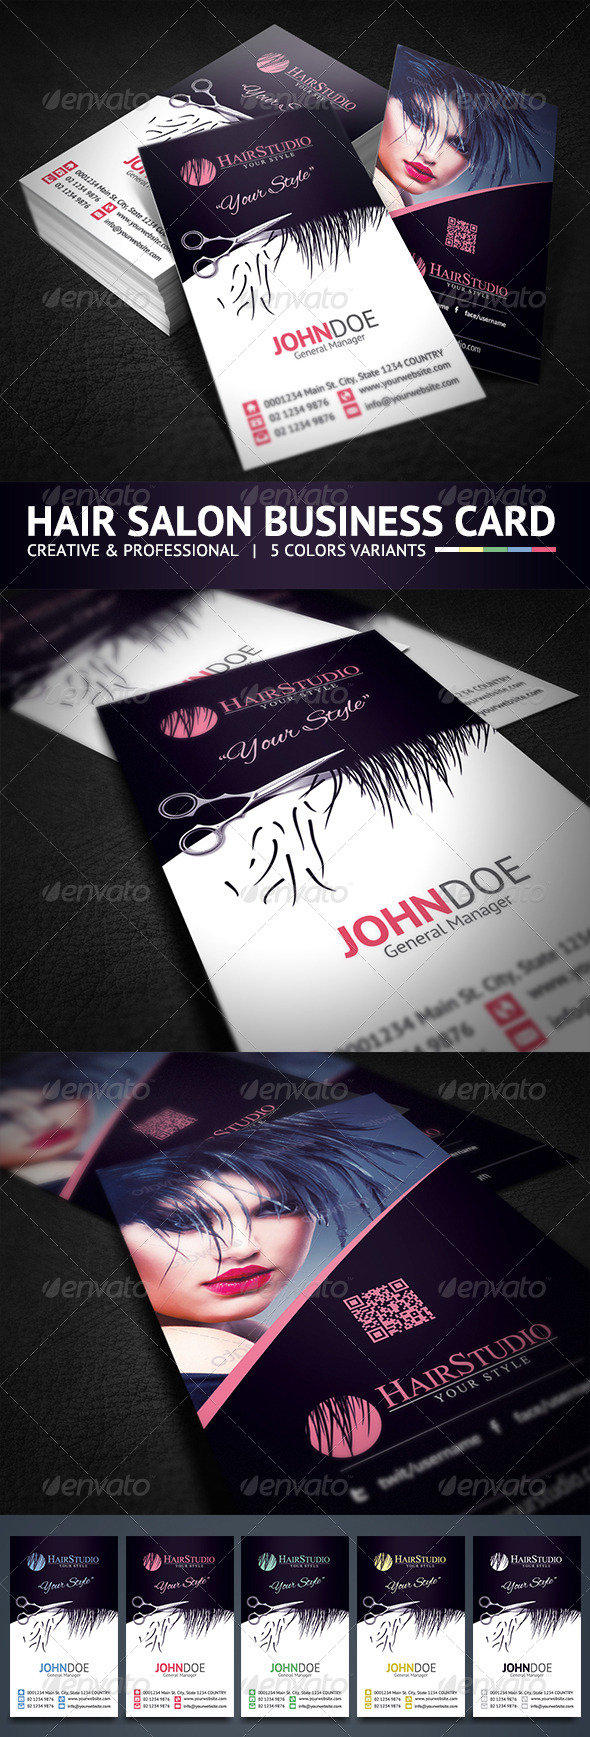 Creative Hair Salon Business Card by hsynkyc | GraphicRiver